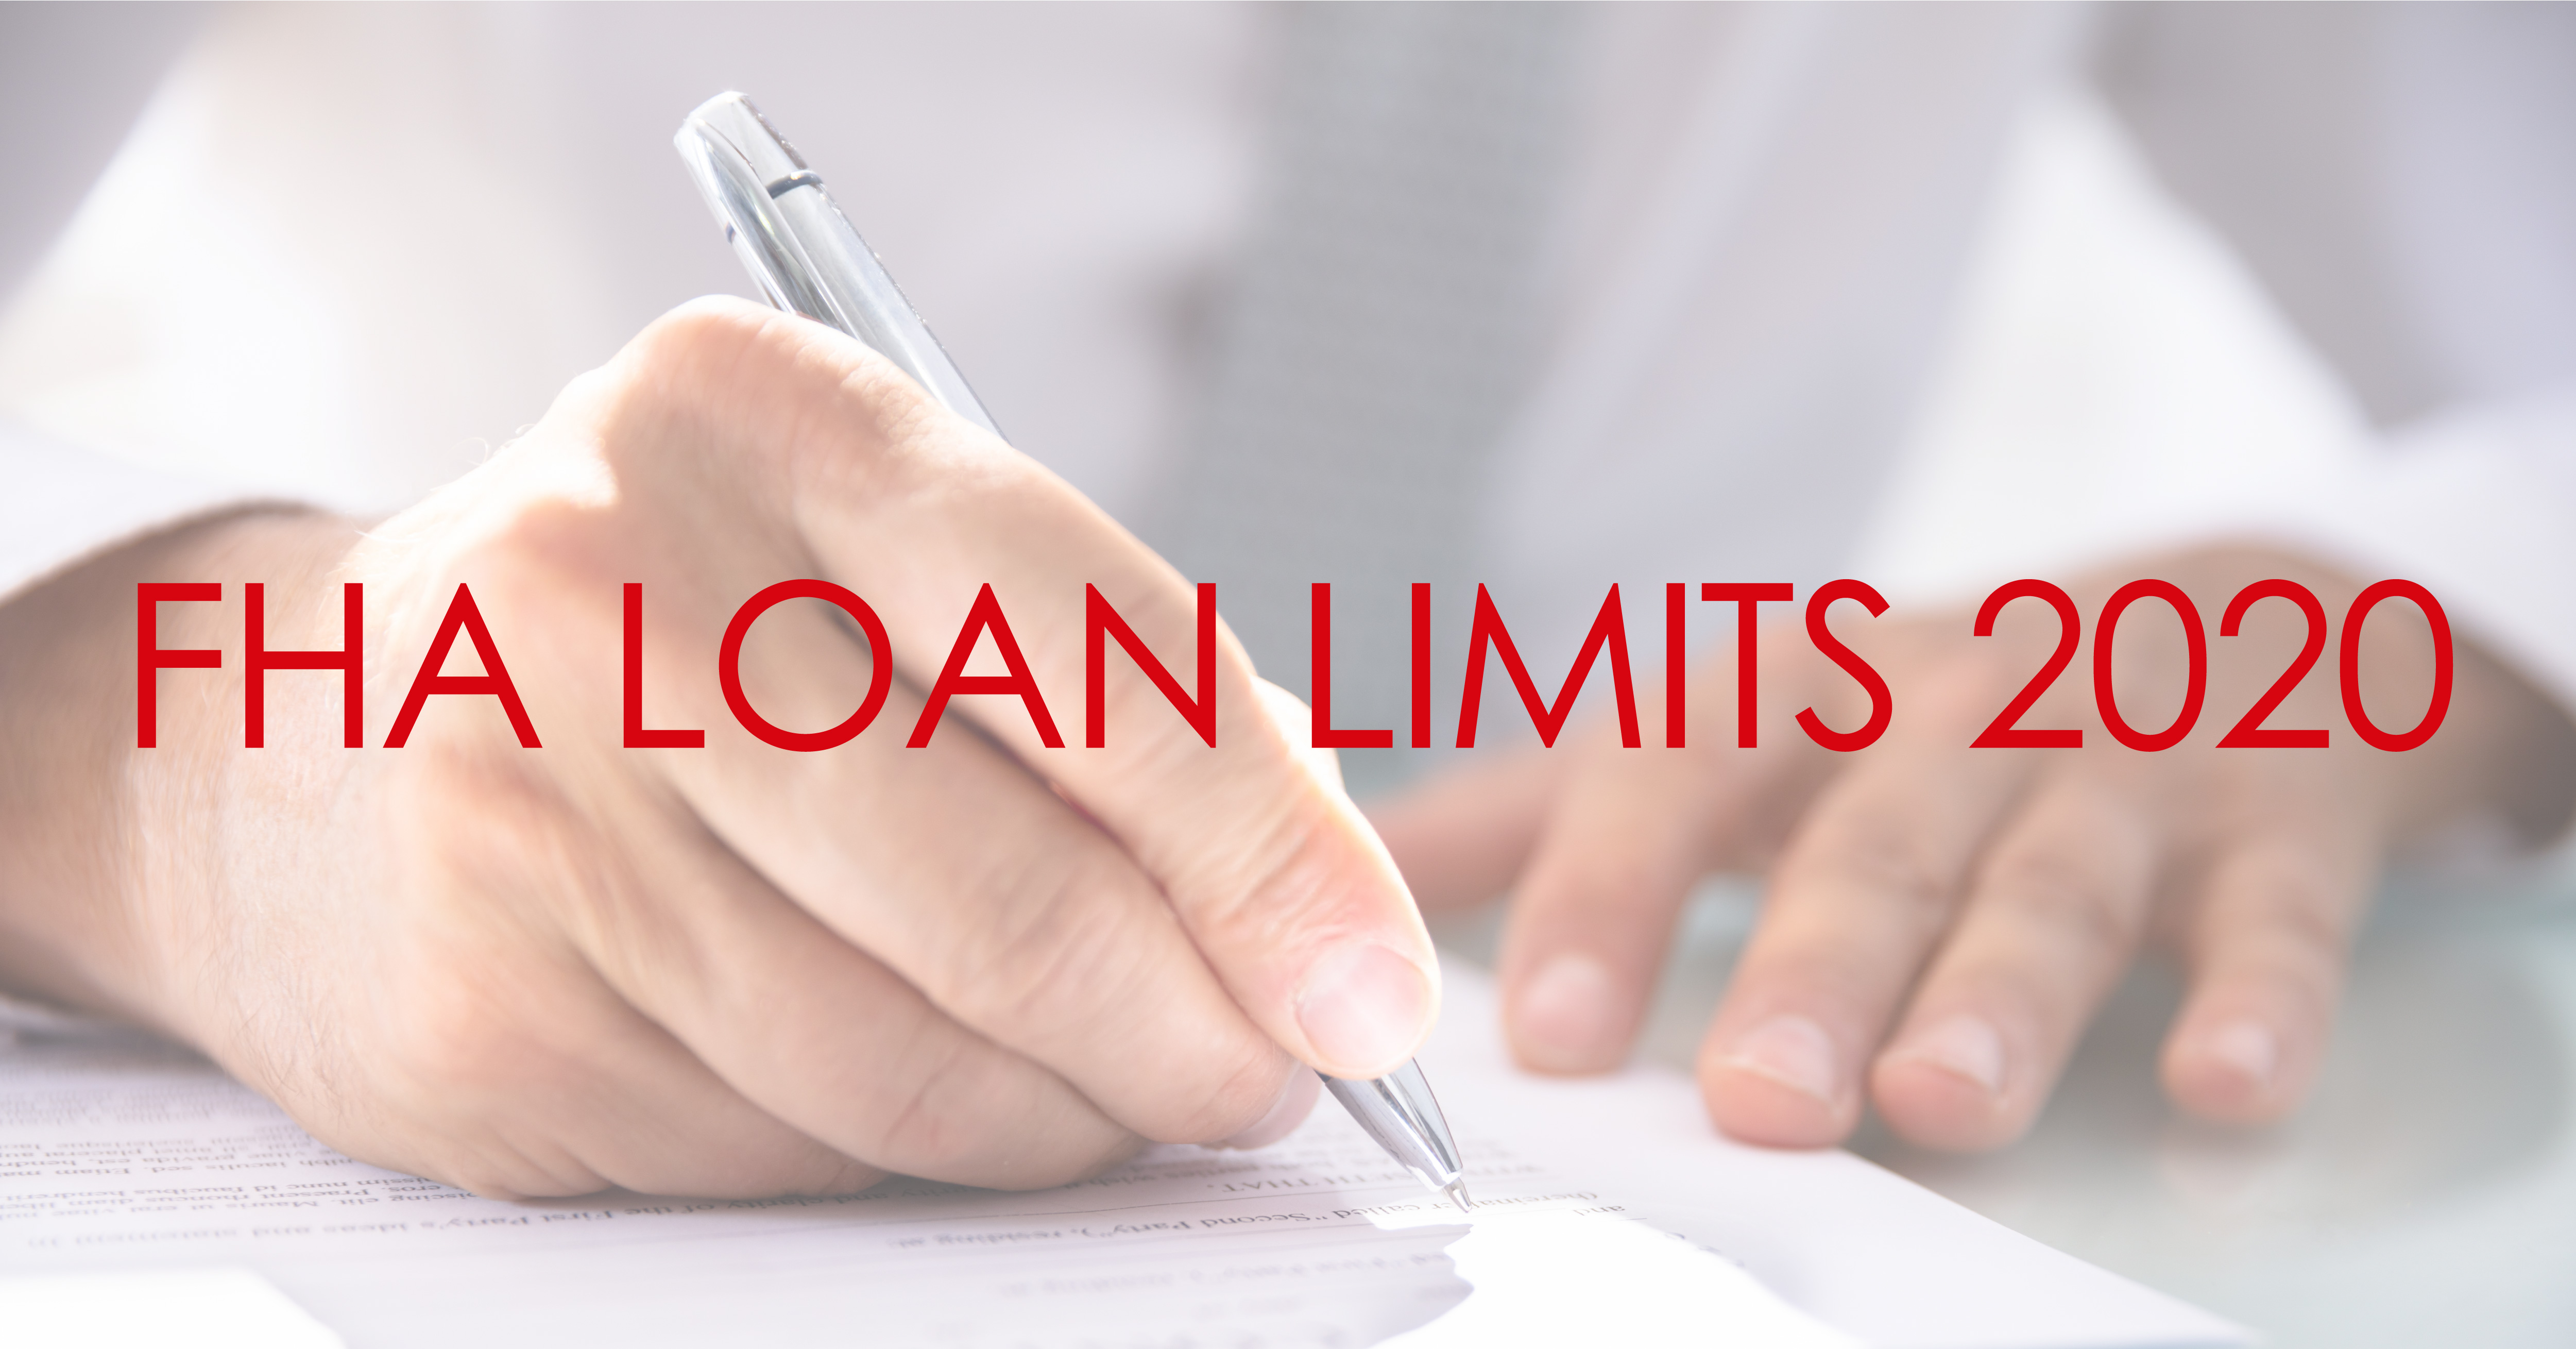 FHA Loan Limits Increased In 2020